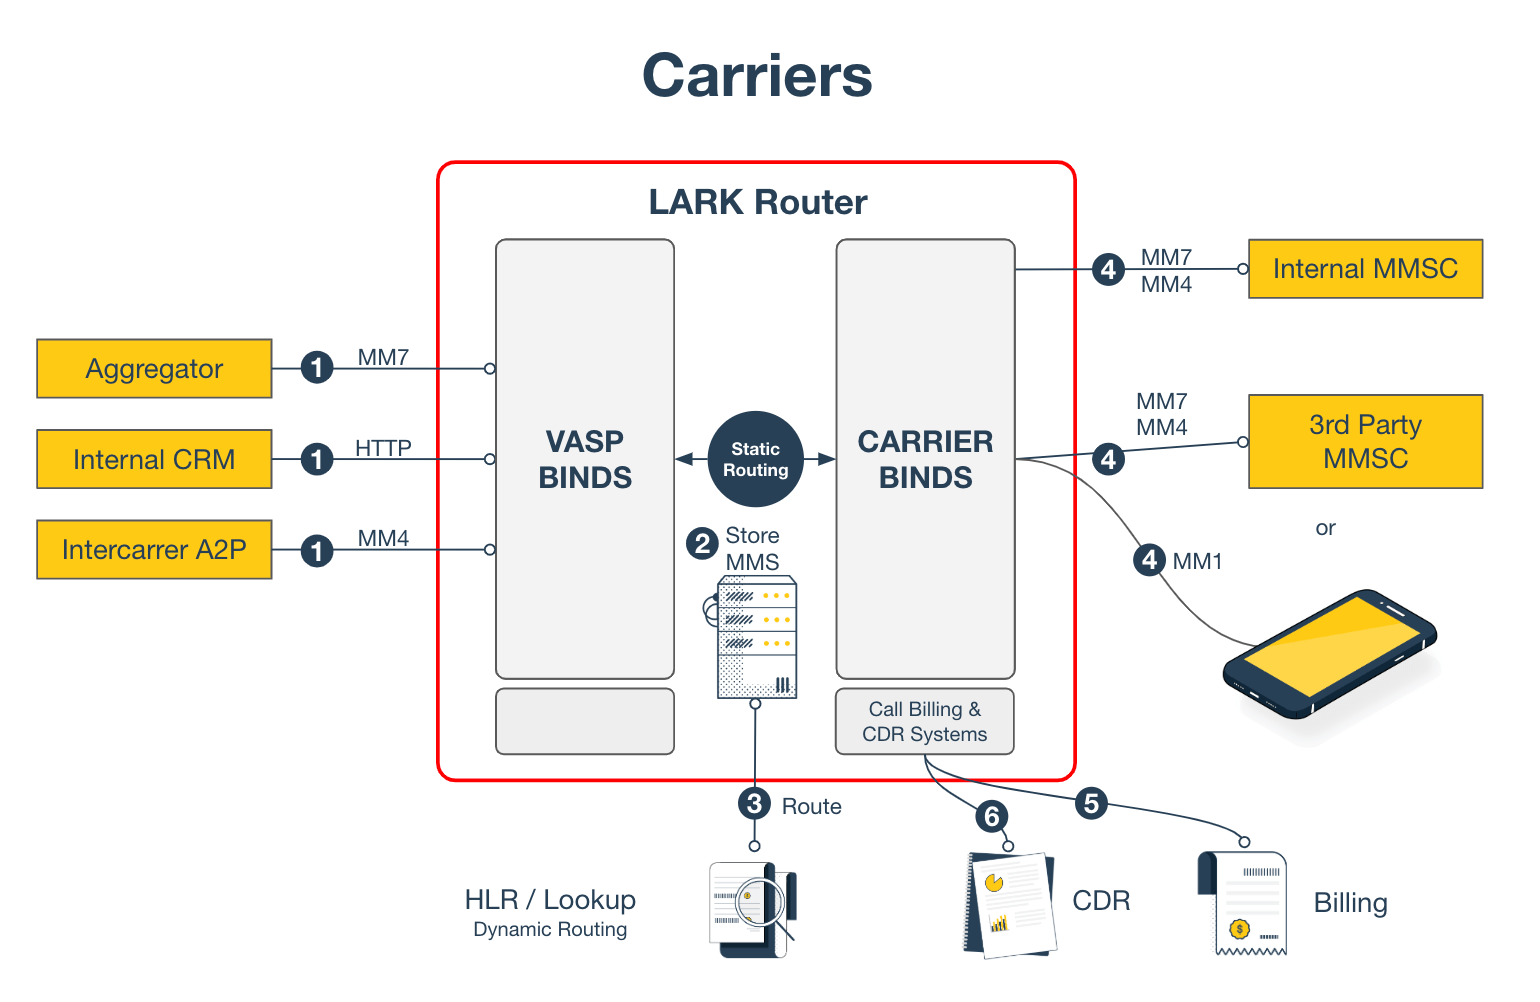 Lark Router for Carriers